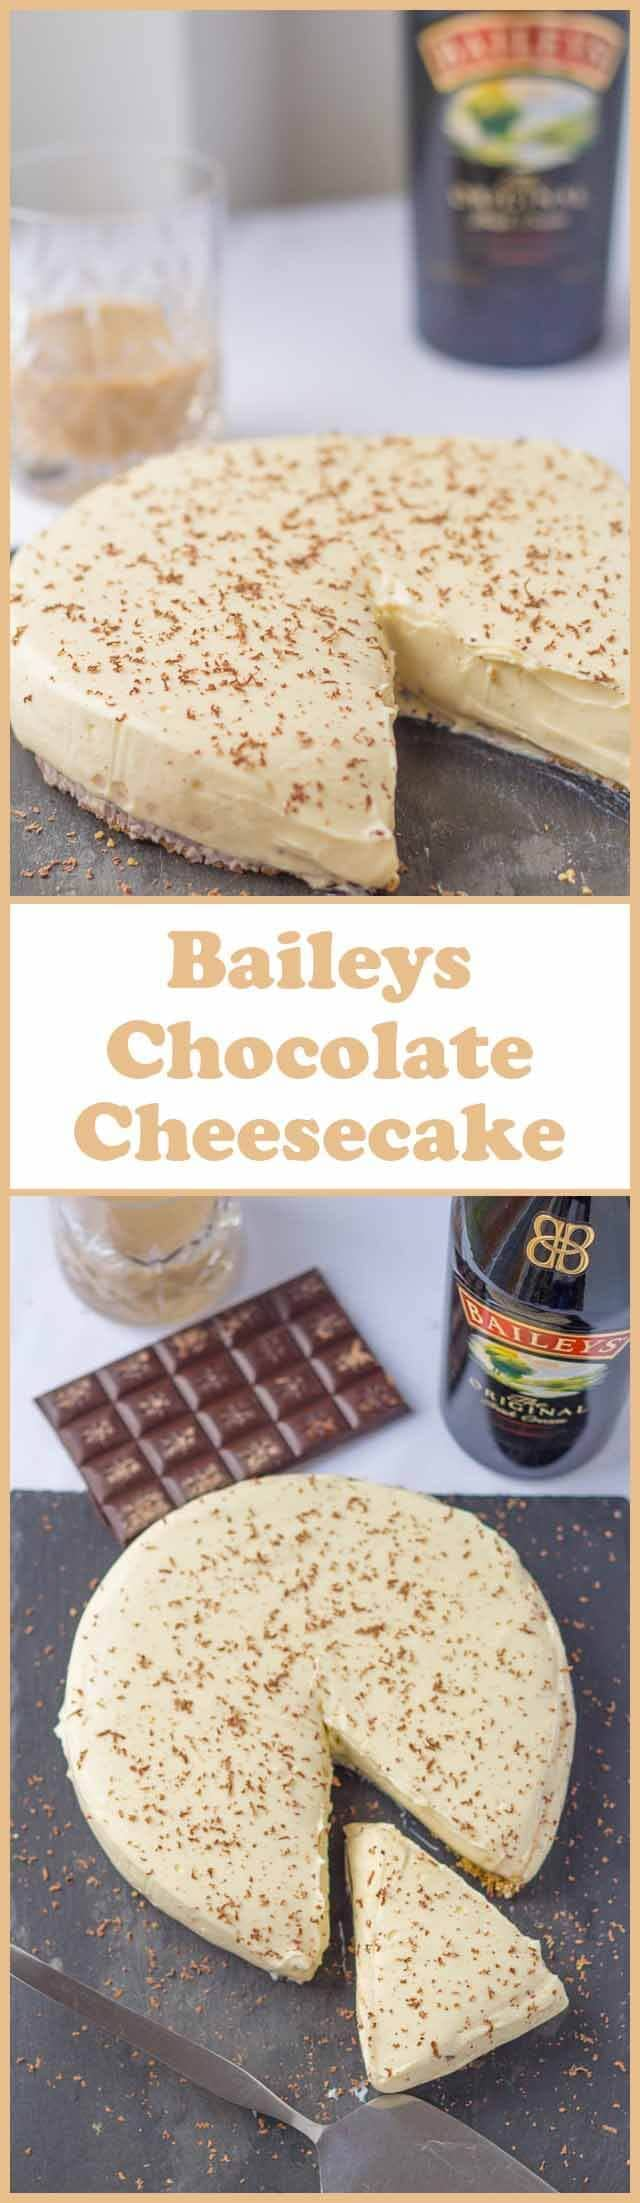 This mouthwatering Baileys chocolate cheesecake has a layer of chocolate ganache on top of the biscuit base which gives even more luxury to an already decadent creamy dessert.